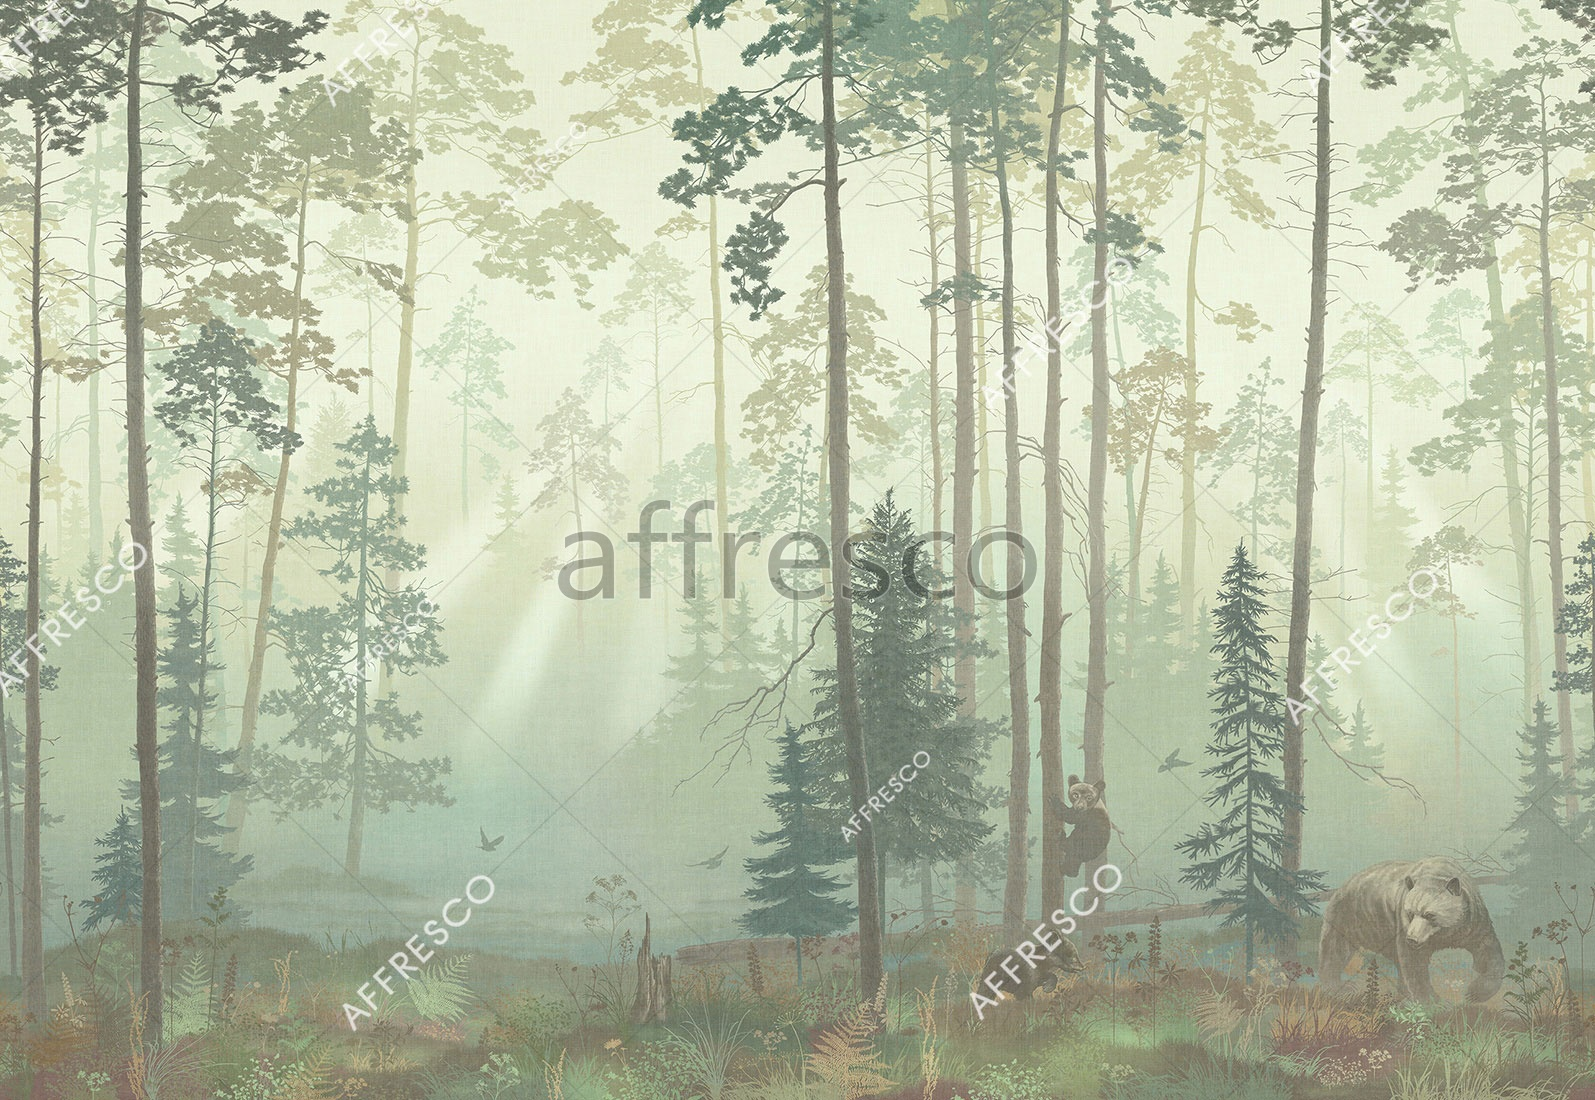 ID136008 | Forest |  | Affresco Factory